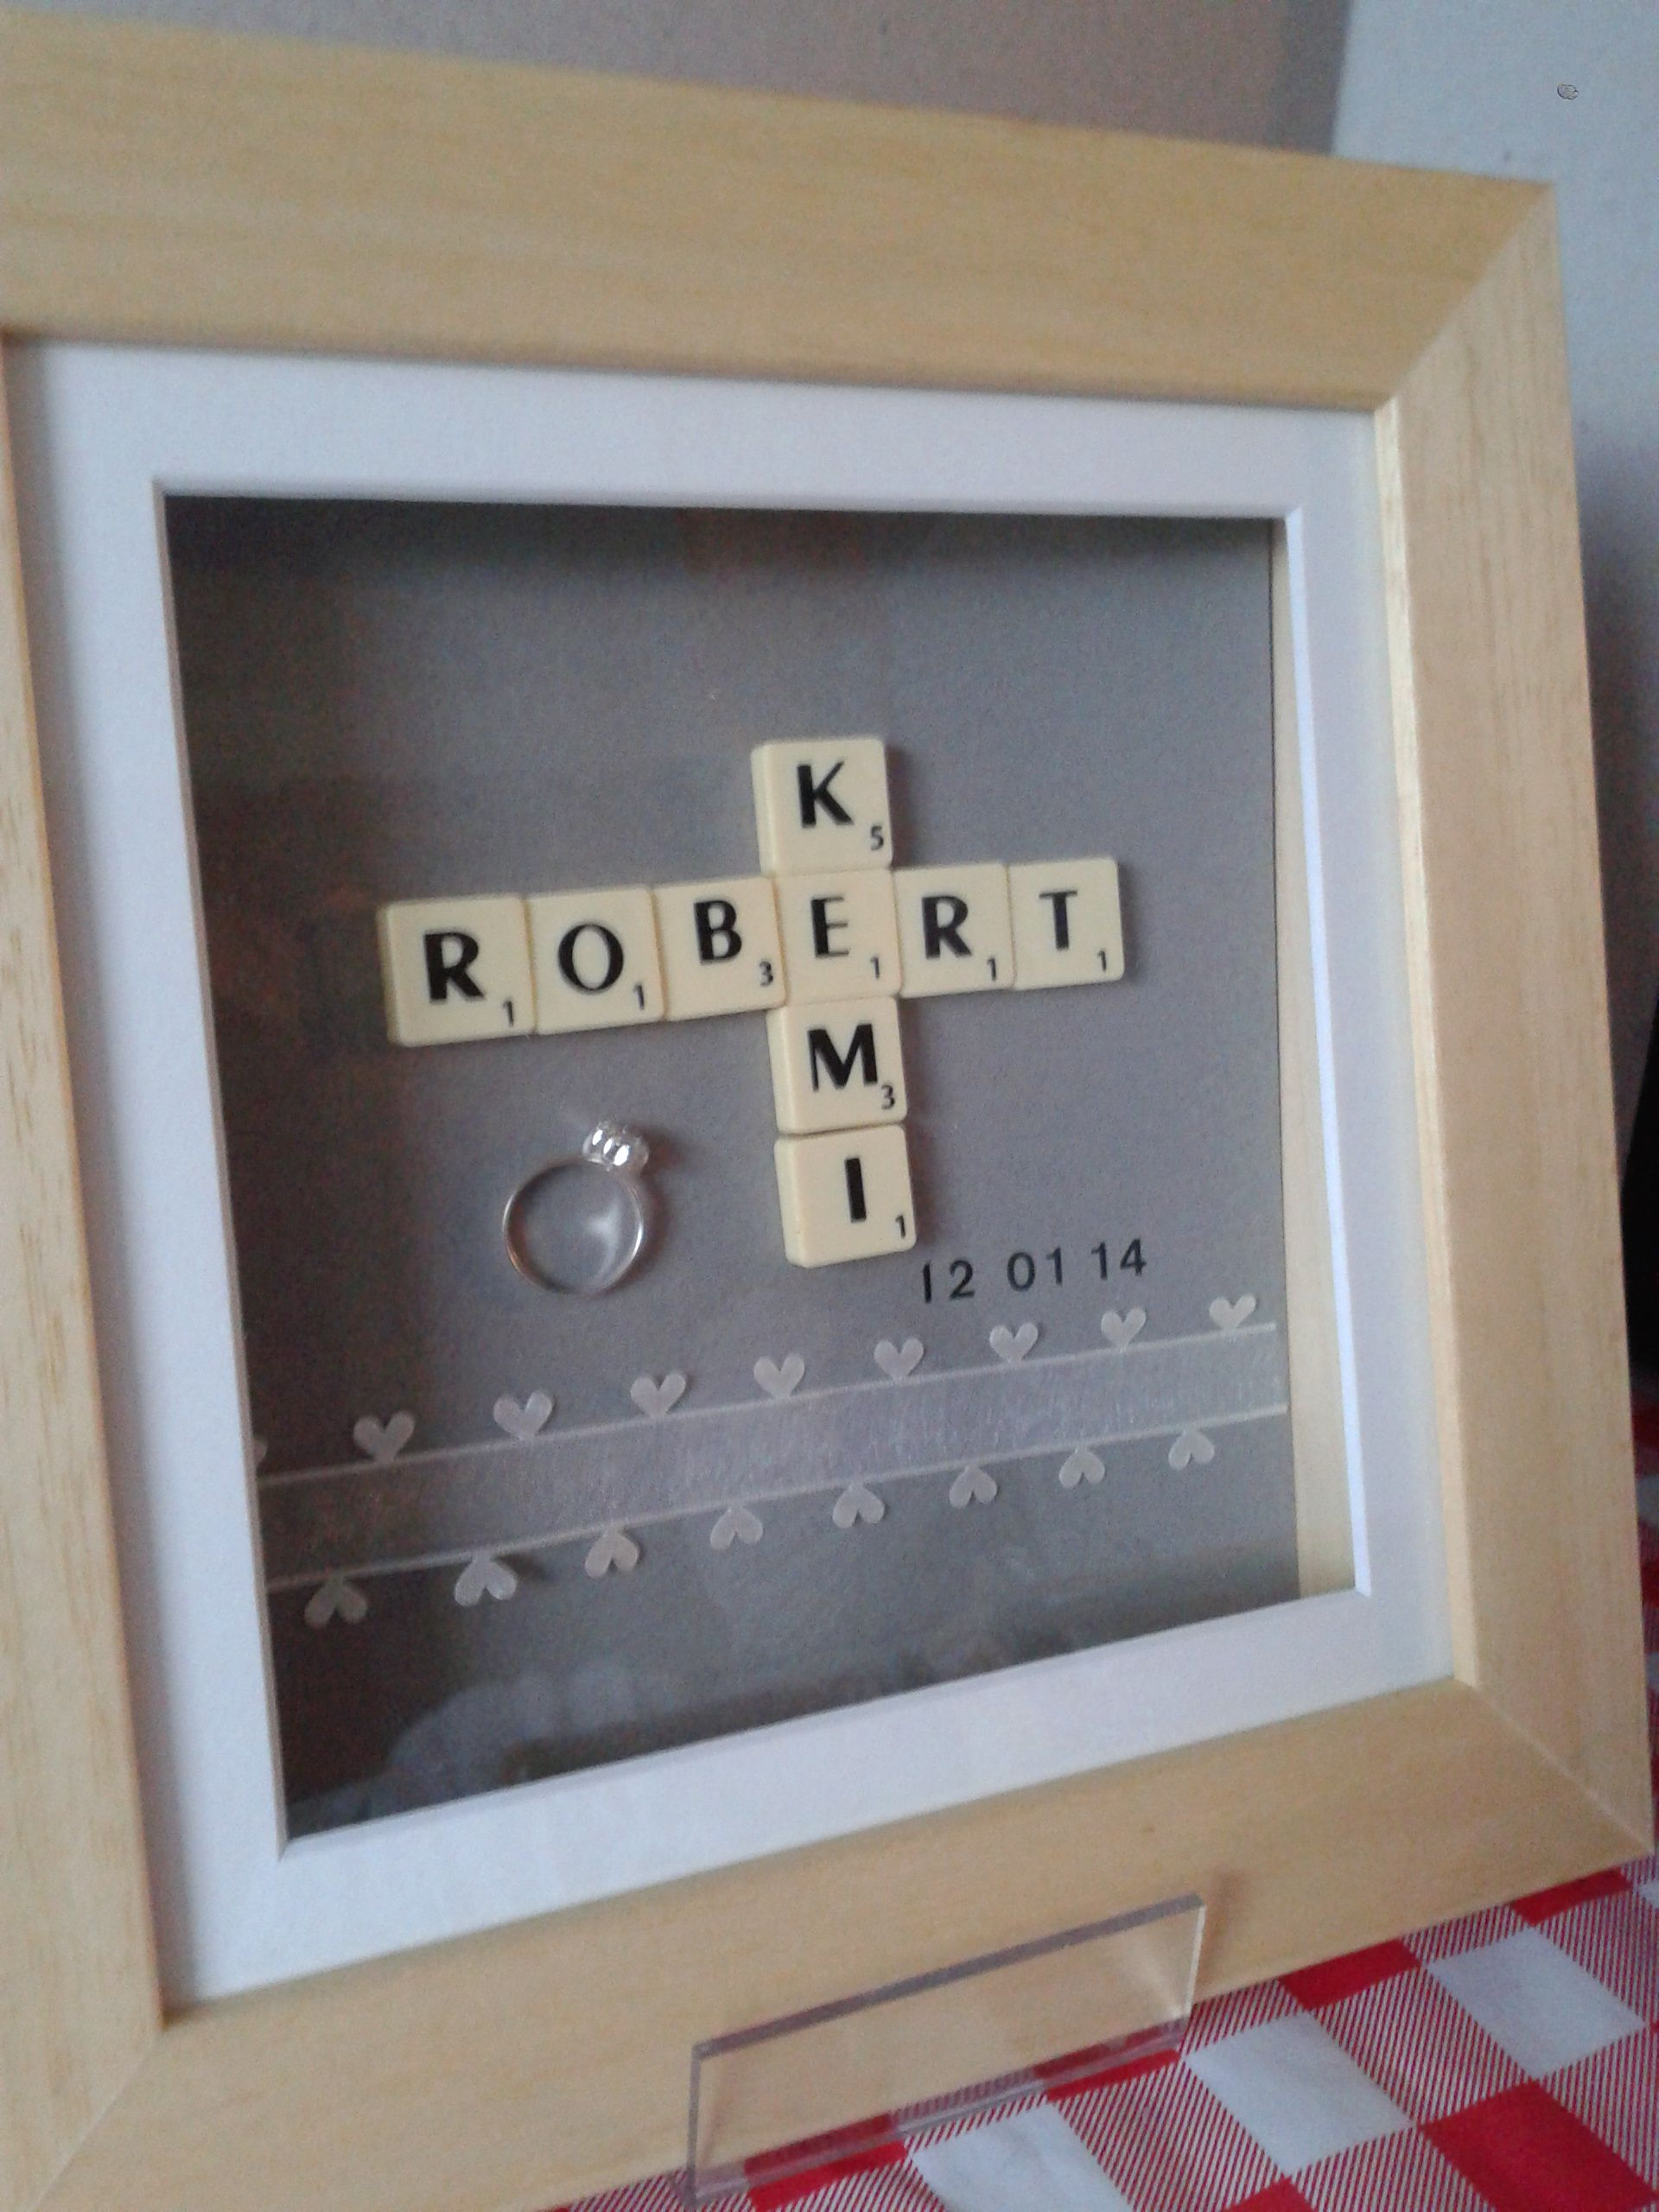 10 X 10 Scrabble Frame Engagement Gift 35 Patchworkpapillon@Gmailcom